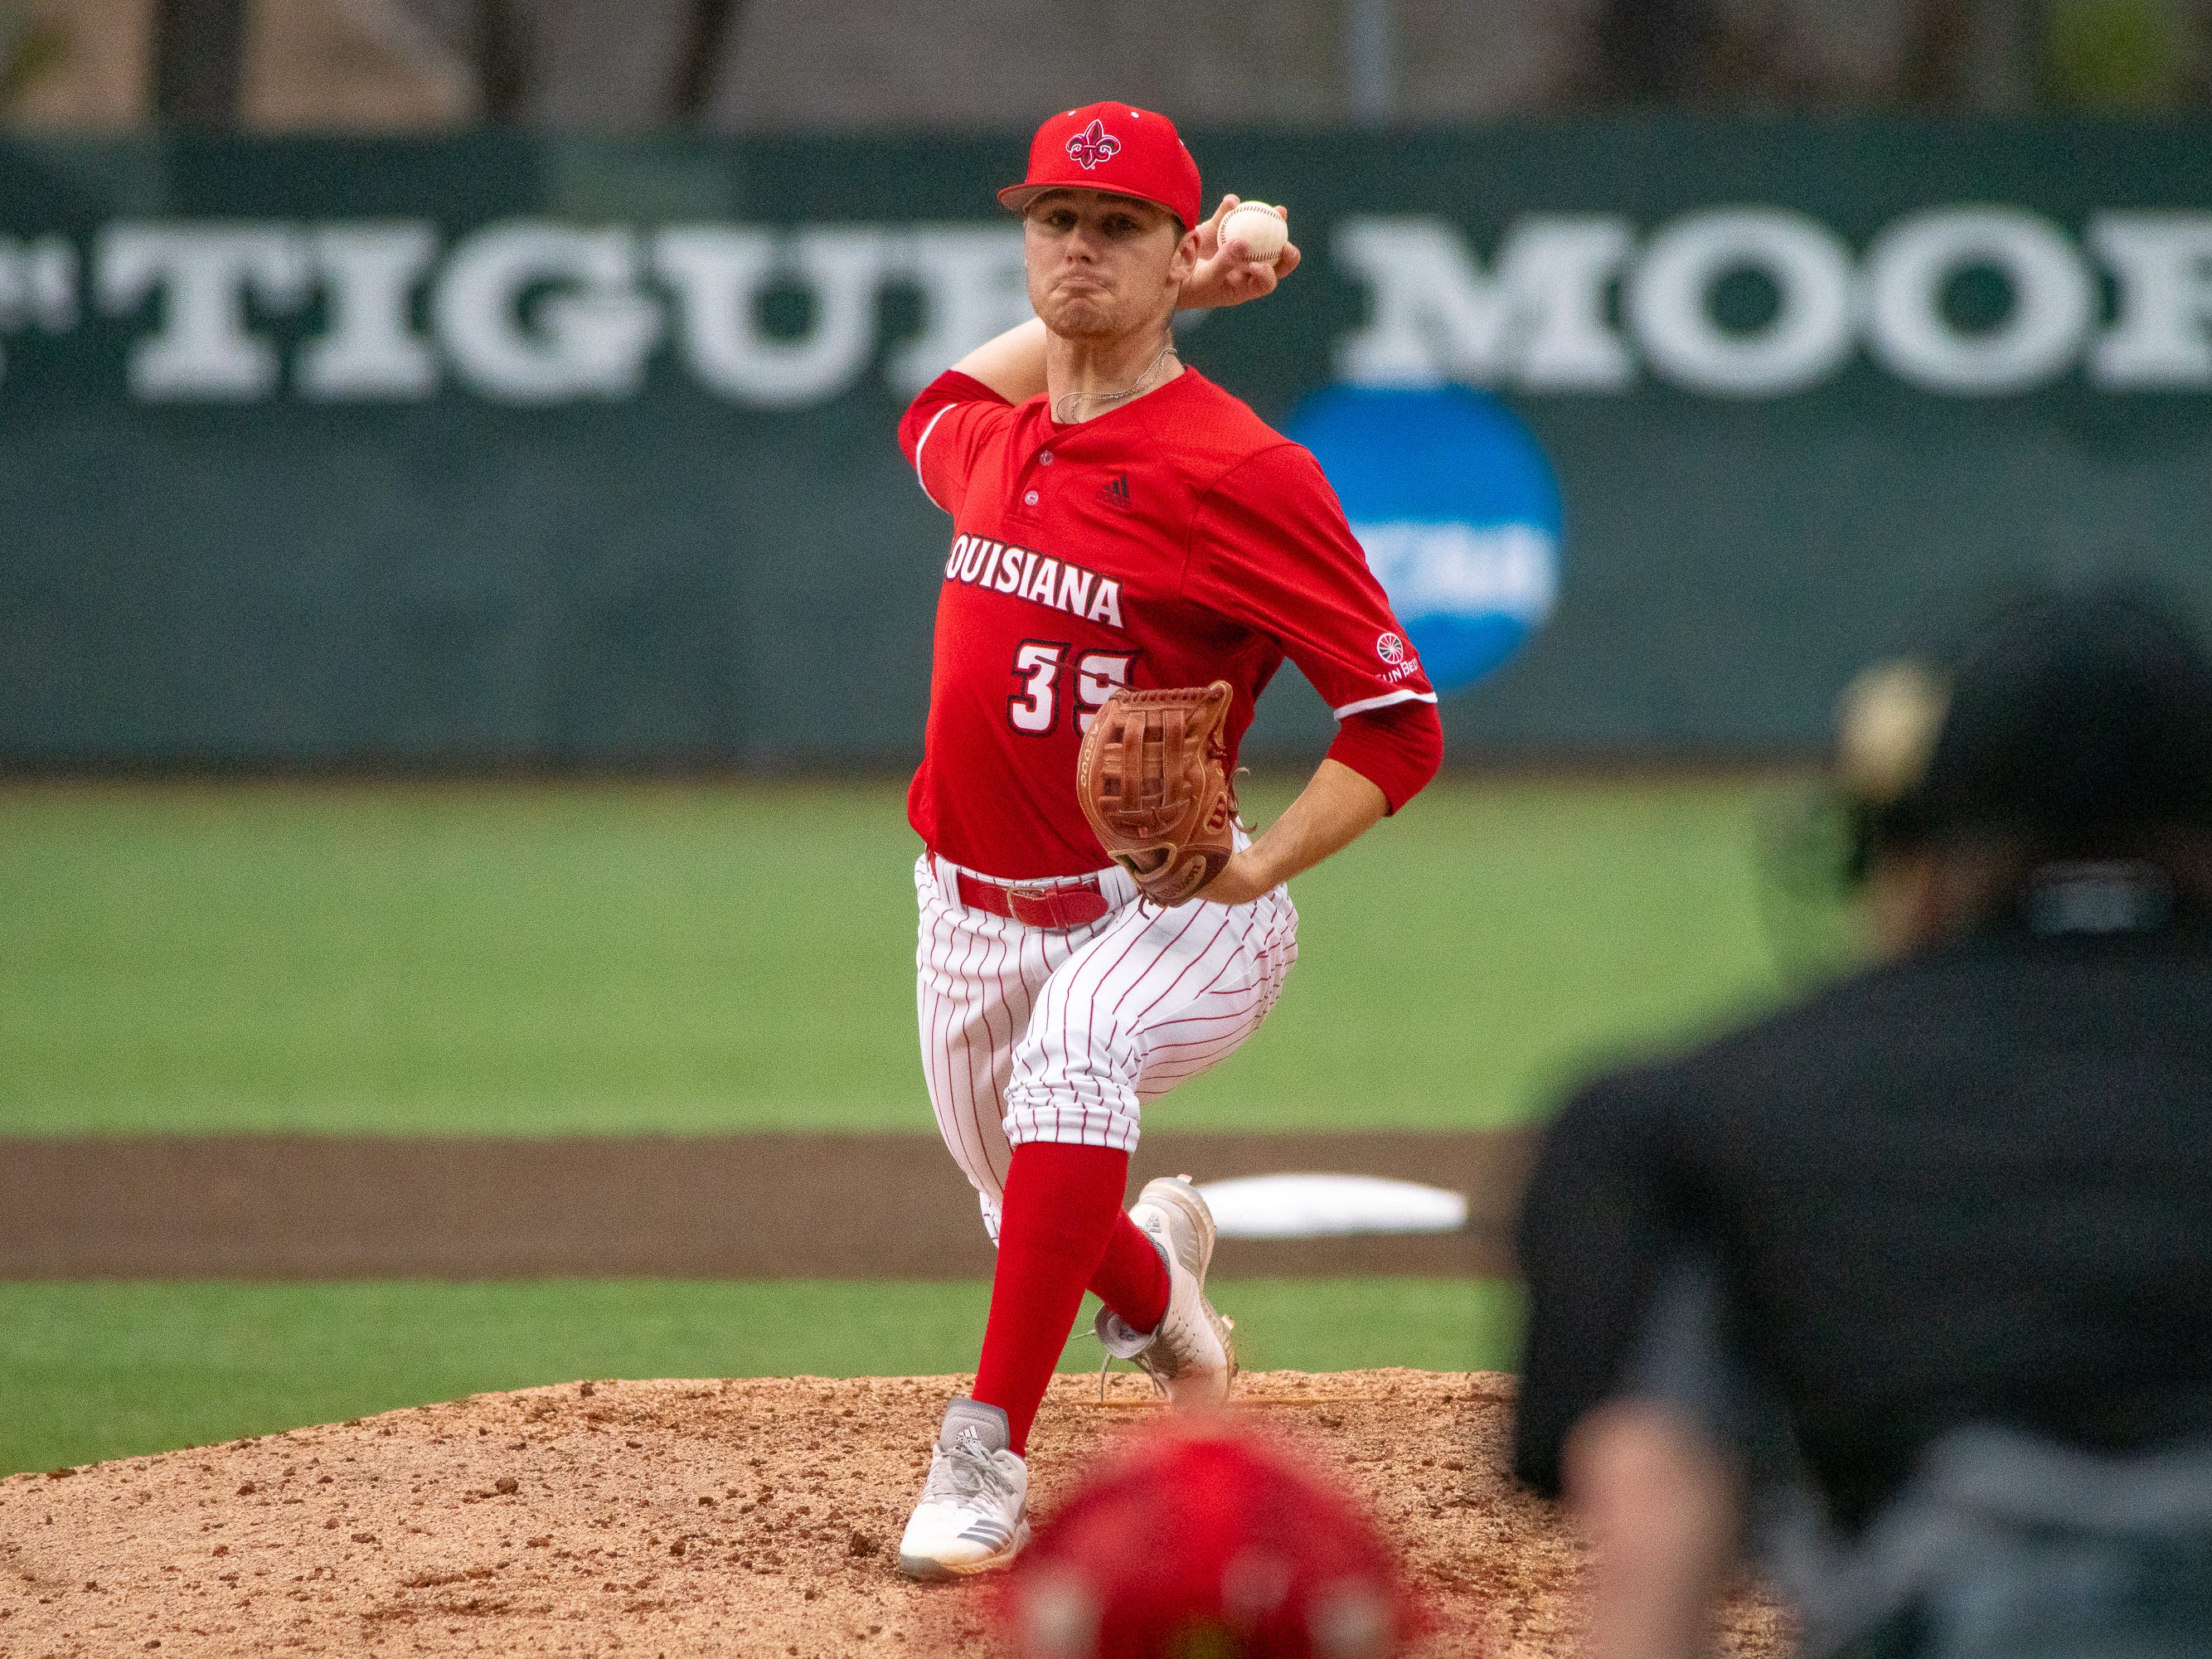 UL's Michael Leaumont pitches from the mound as the Ragin' Cajuns take on the Loyola-Marymount Lions at M.L. Tigue Moore Field on Saturday, March 9, 2019.